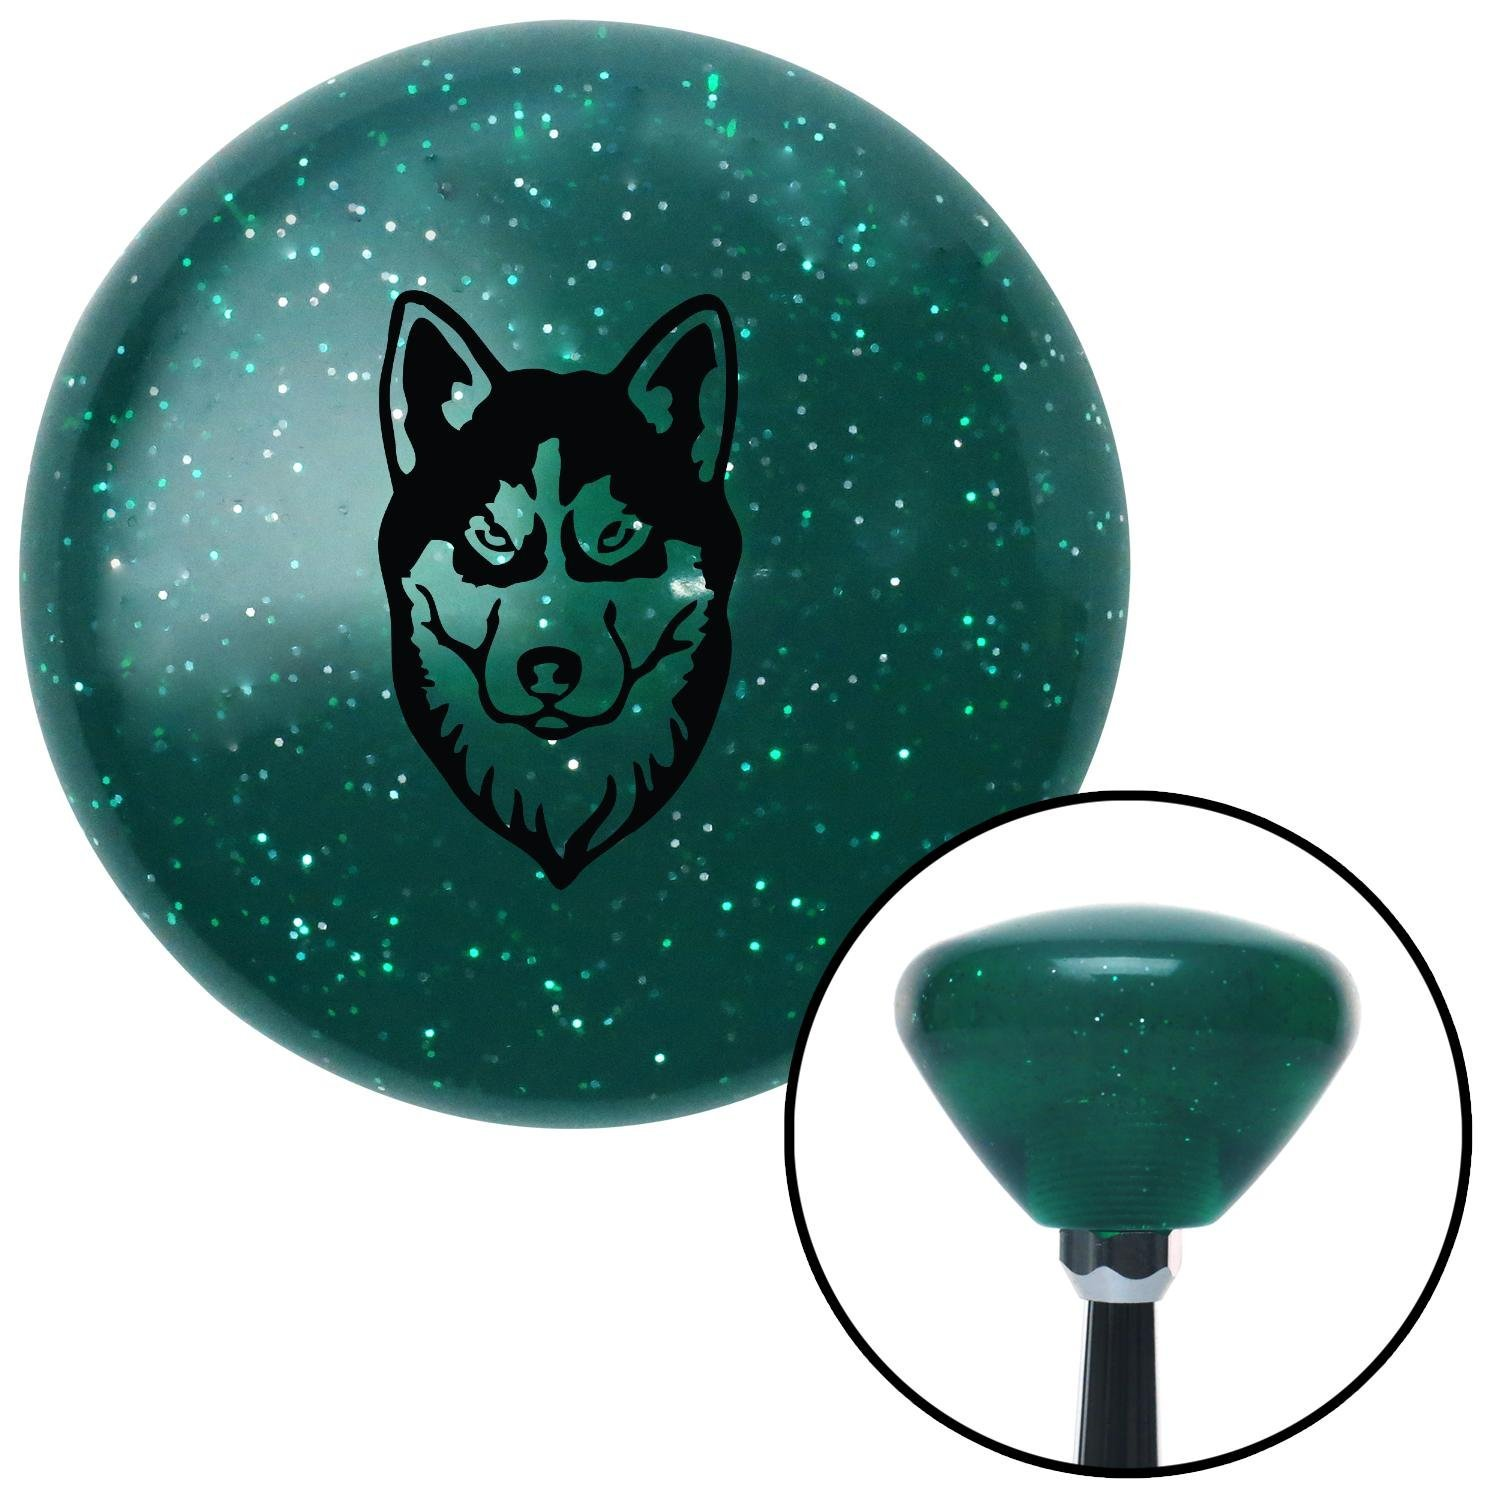 Black Husky American Shifter 207755 Green Retro Metal Flake Shift Knob with M16 x 1.5 Insert